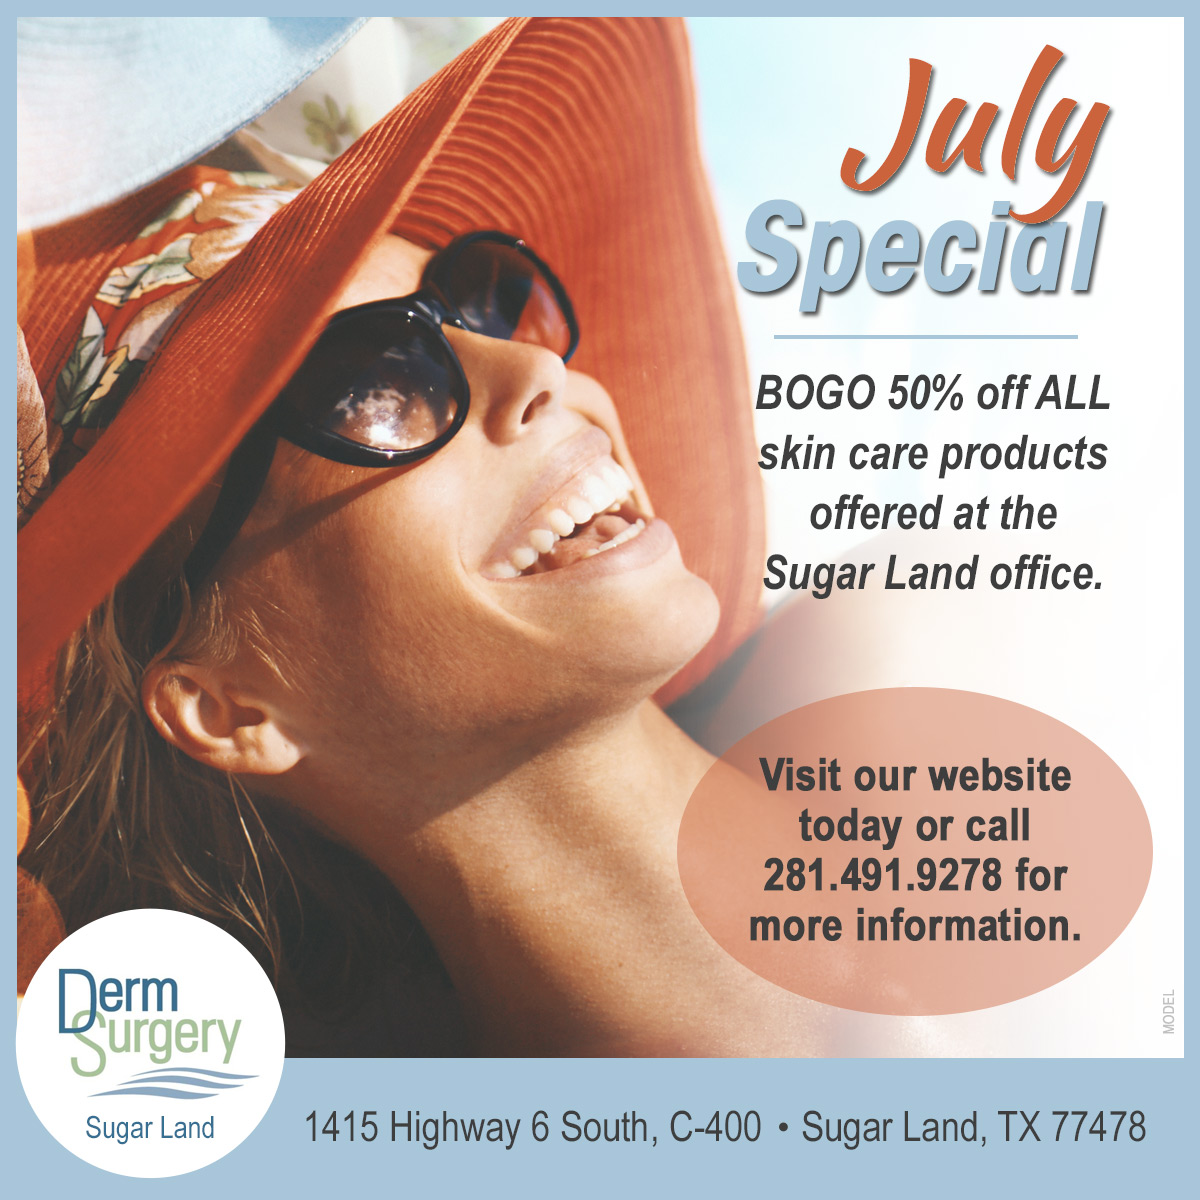 Sugar Land July Specials